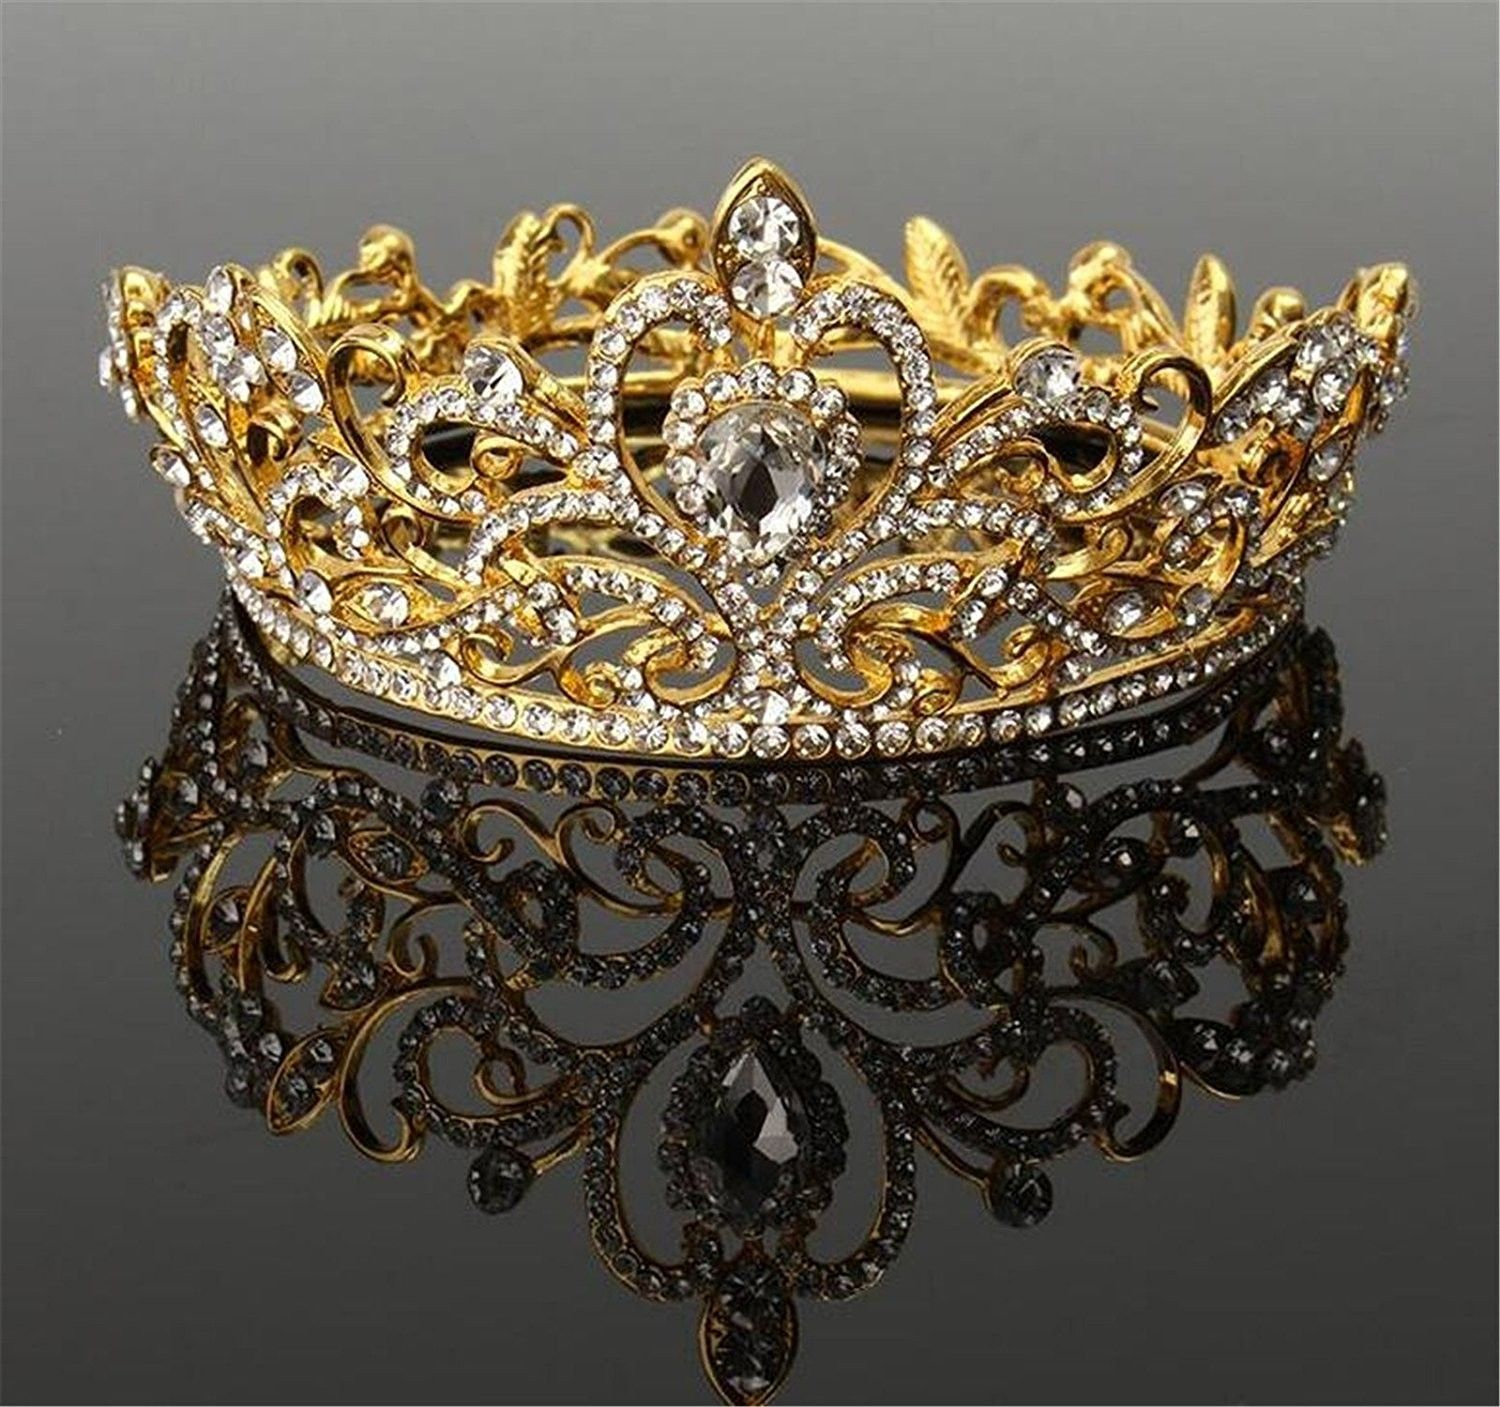 Wiipu Luxury Gold Tone Drop Queen Pageant Prom Crystal Wedding Bridal Tiara Crown A1072 Gold C6185l5qqkd Crystal Wedding Wedding Bridal Tiaras Bridal Tiara